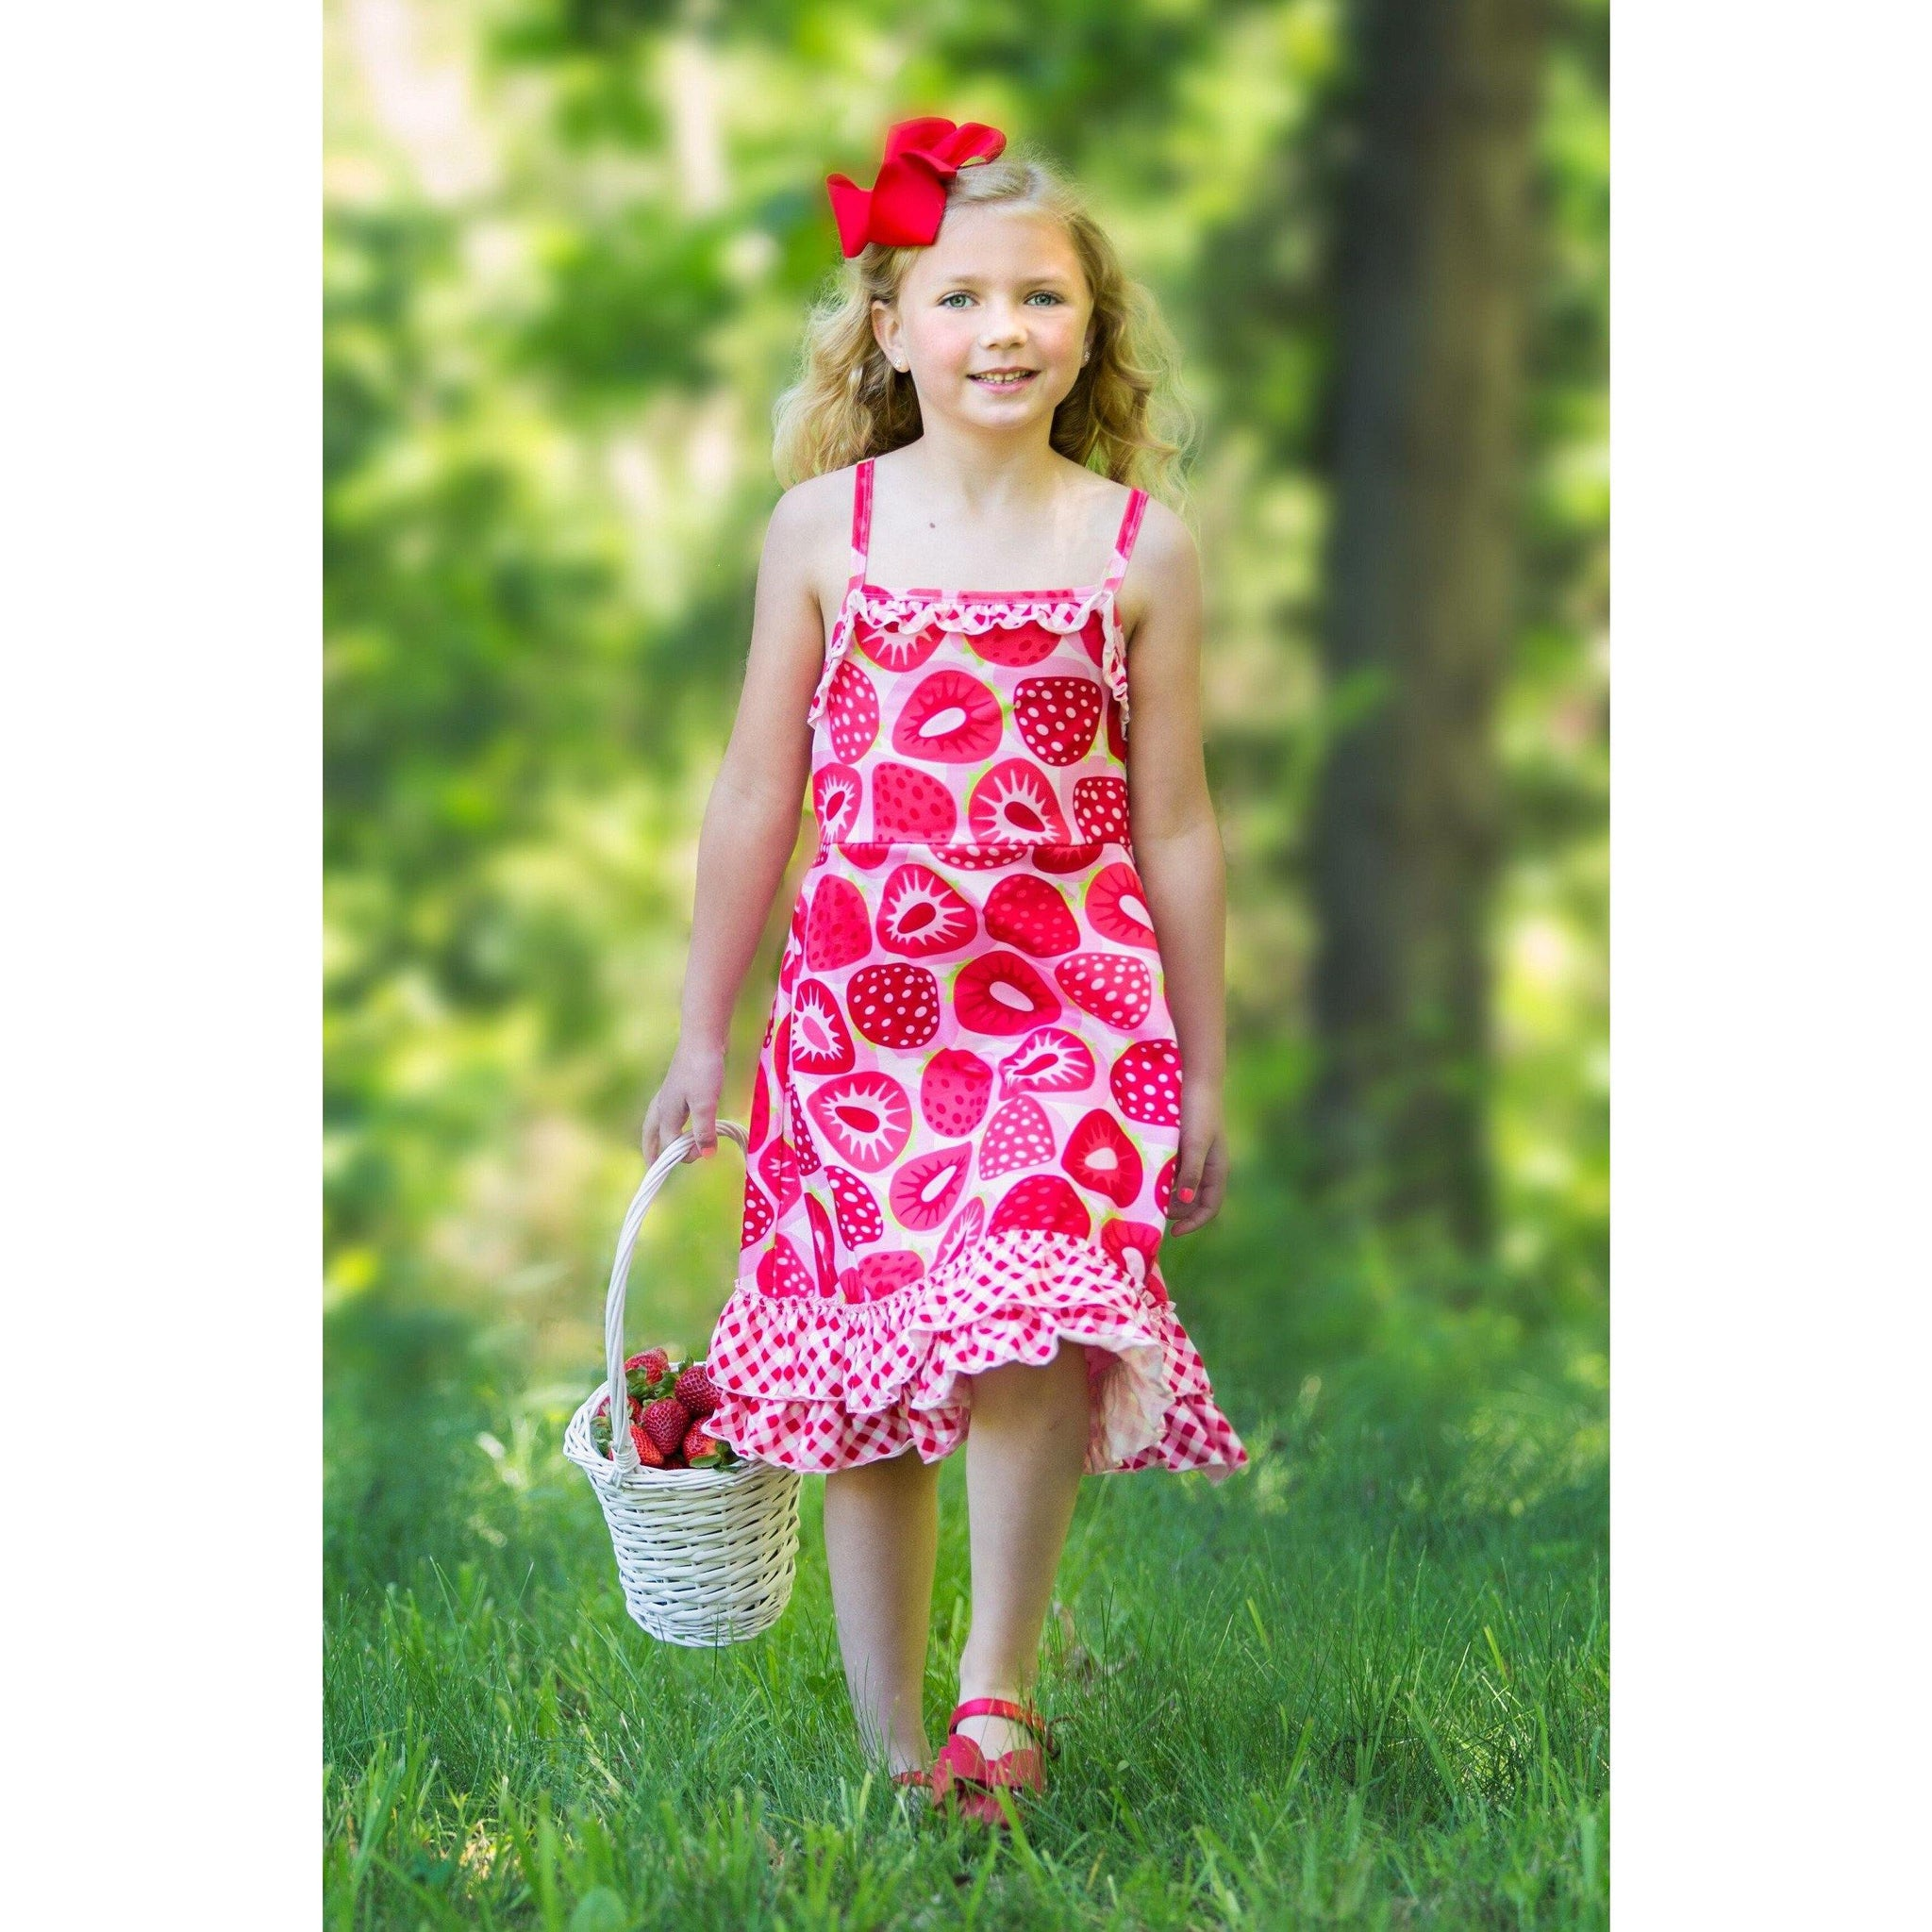 Adorable Essentials, Strawberry Picnic Jessa Dress,Dresses,Adorable Essentials, LLC